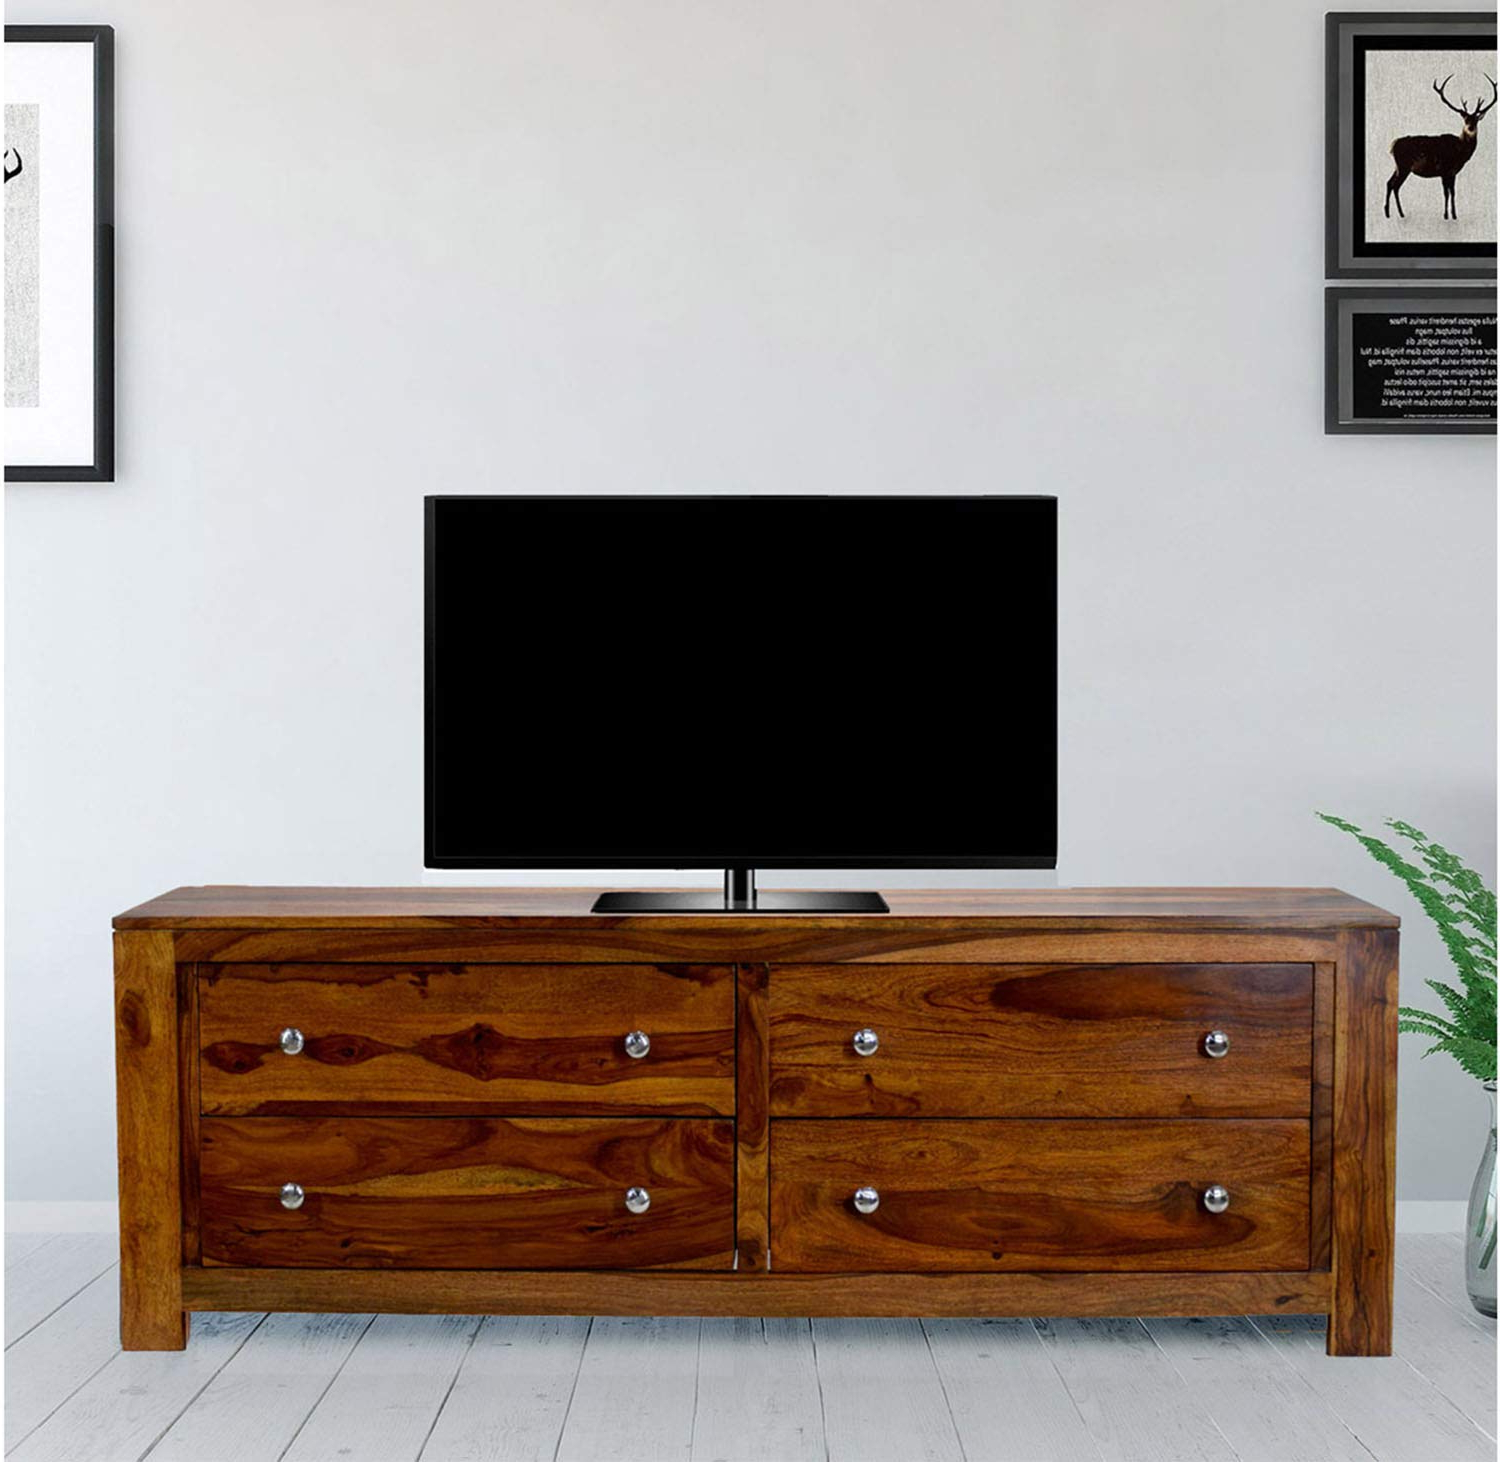 Most Popular Daintree Tv Stands With Regard To Daintree 4Draw Tvc Nt Tv Unit Cabinet (Lacquer Finish, Natural Teak (Gallery 1 of 20)